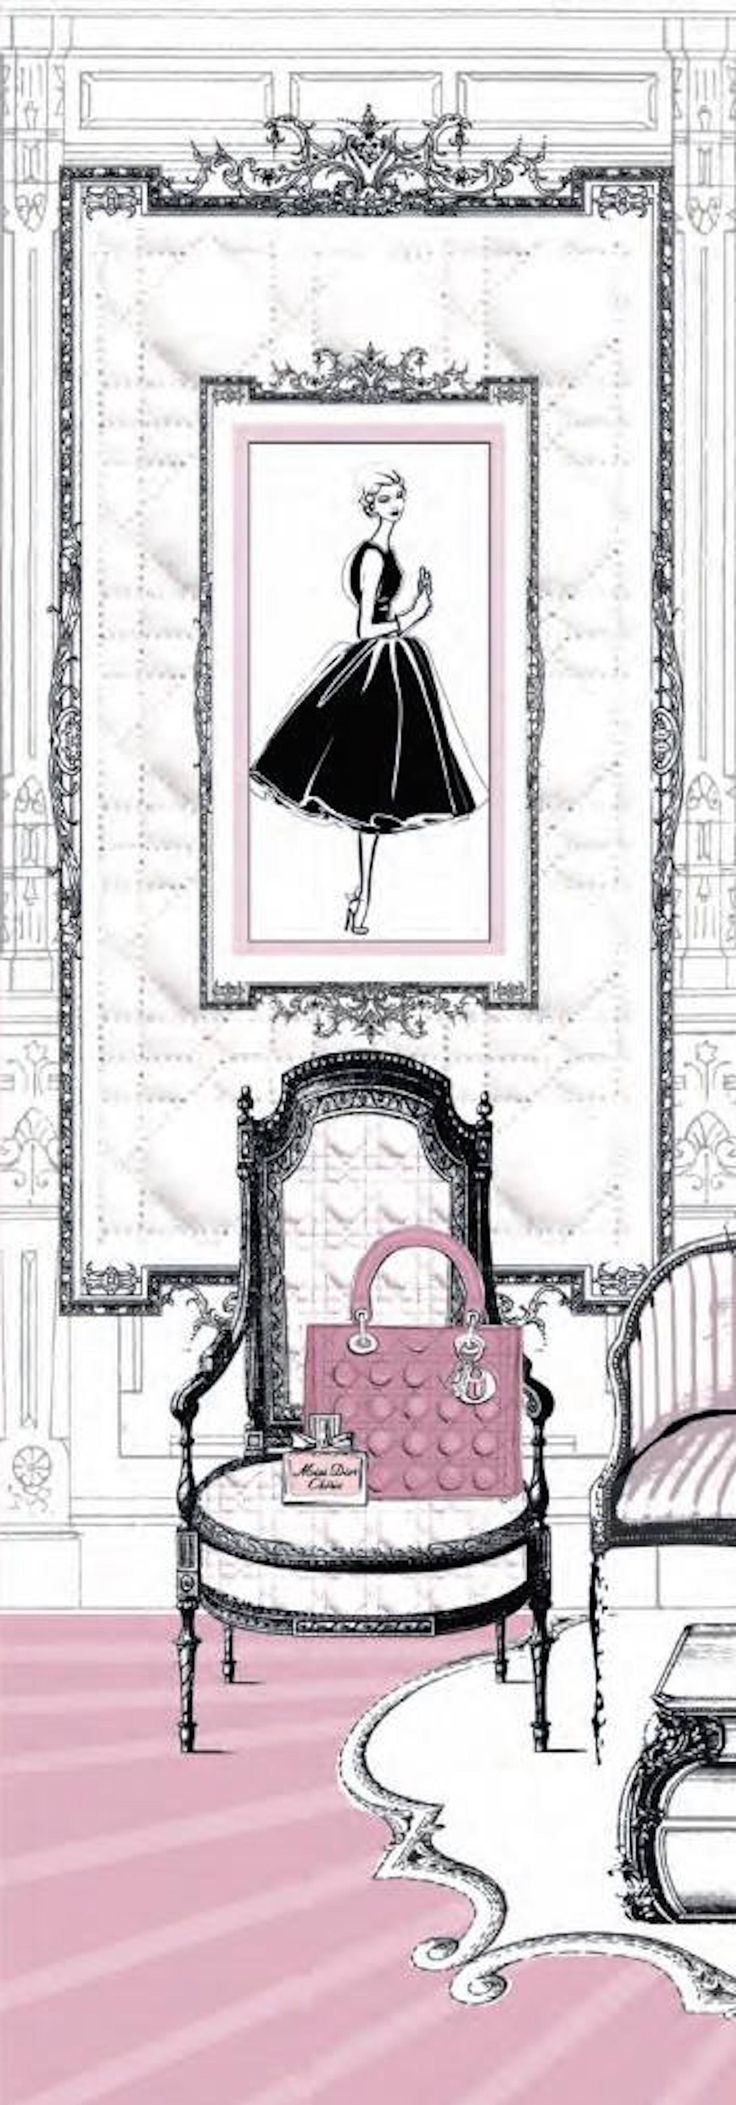 ~Dior | House of Beccaria. Via @houseofbeccaria. #Dior #illustrations